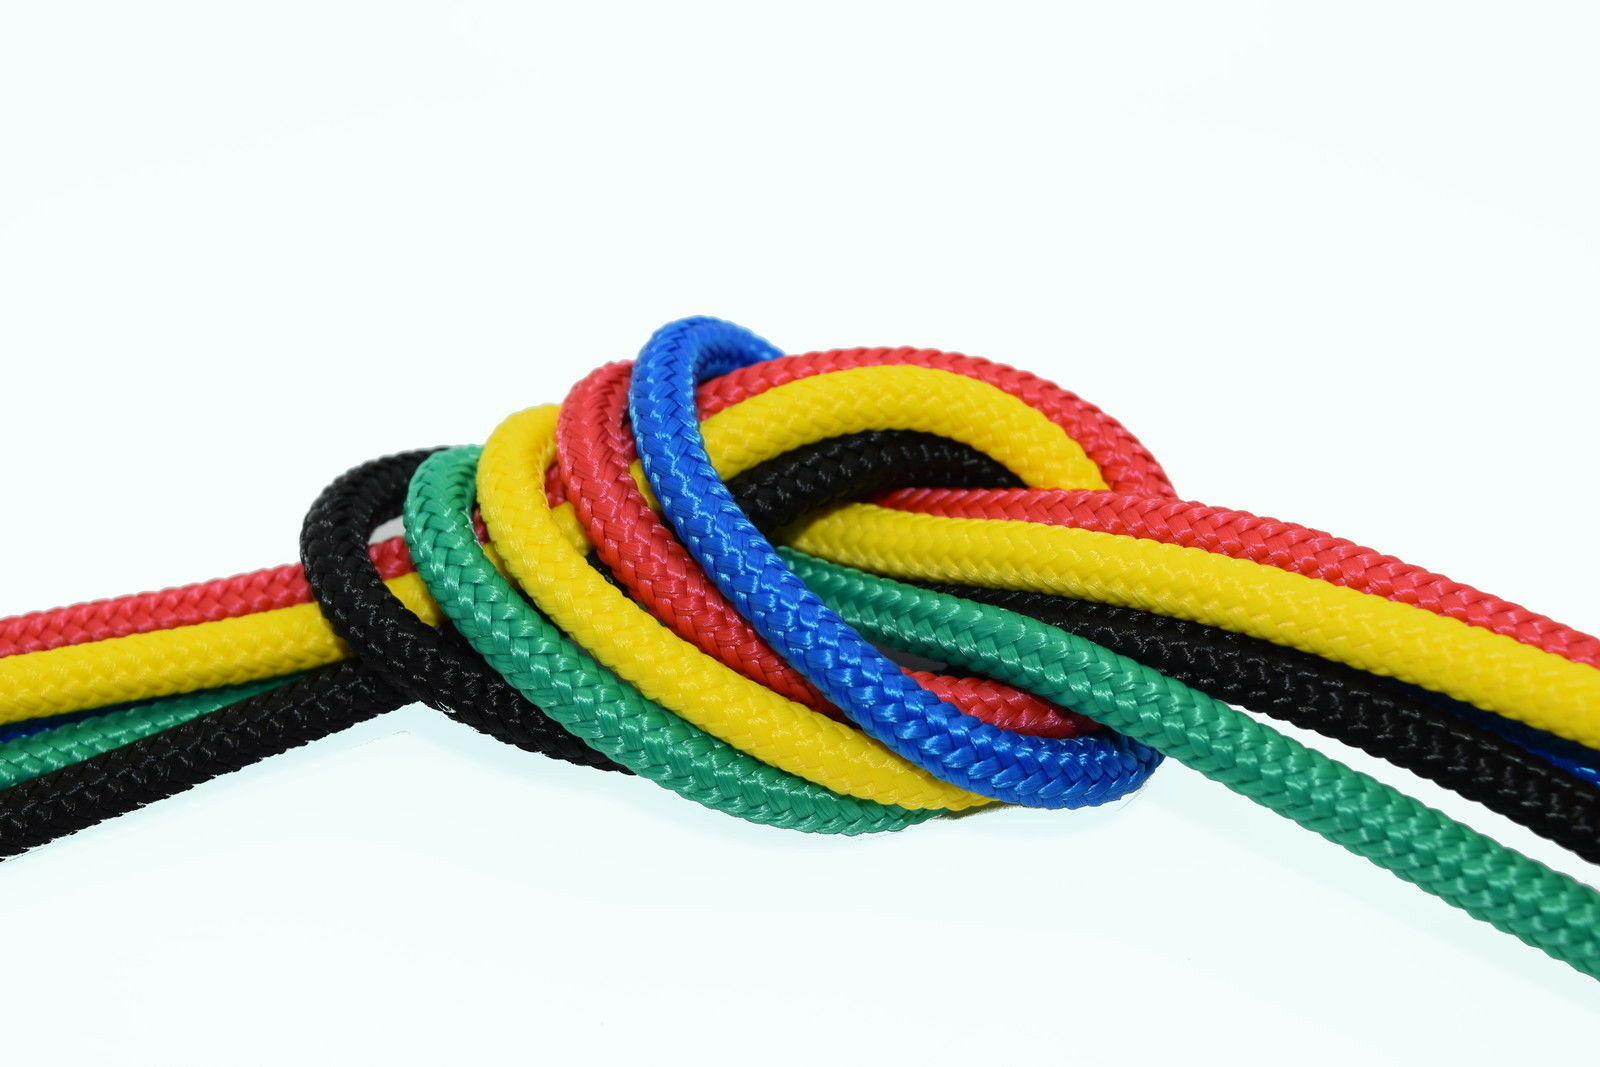 5mm Braided Polypropylene Poly Rope Cord Boat  Yacht Sailing Climbing